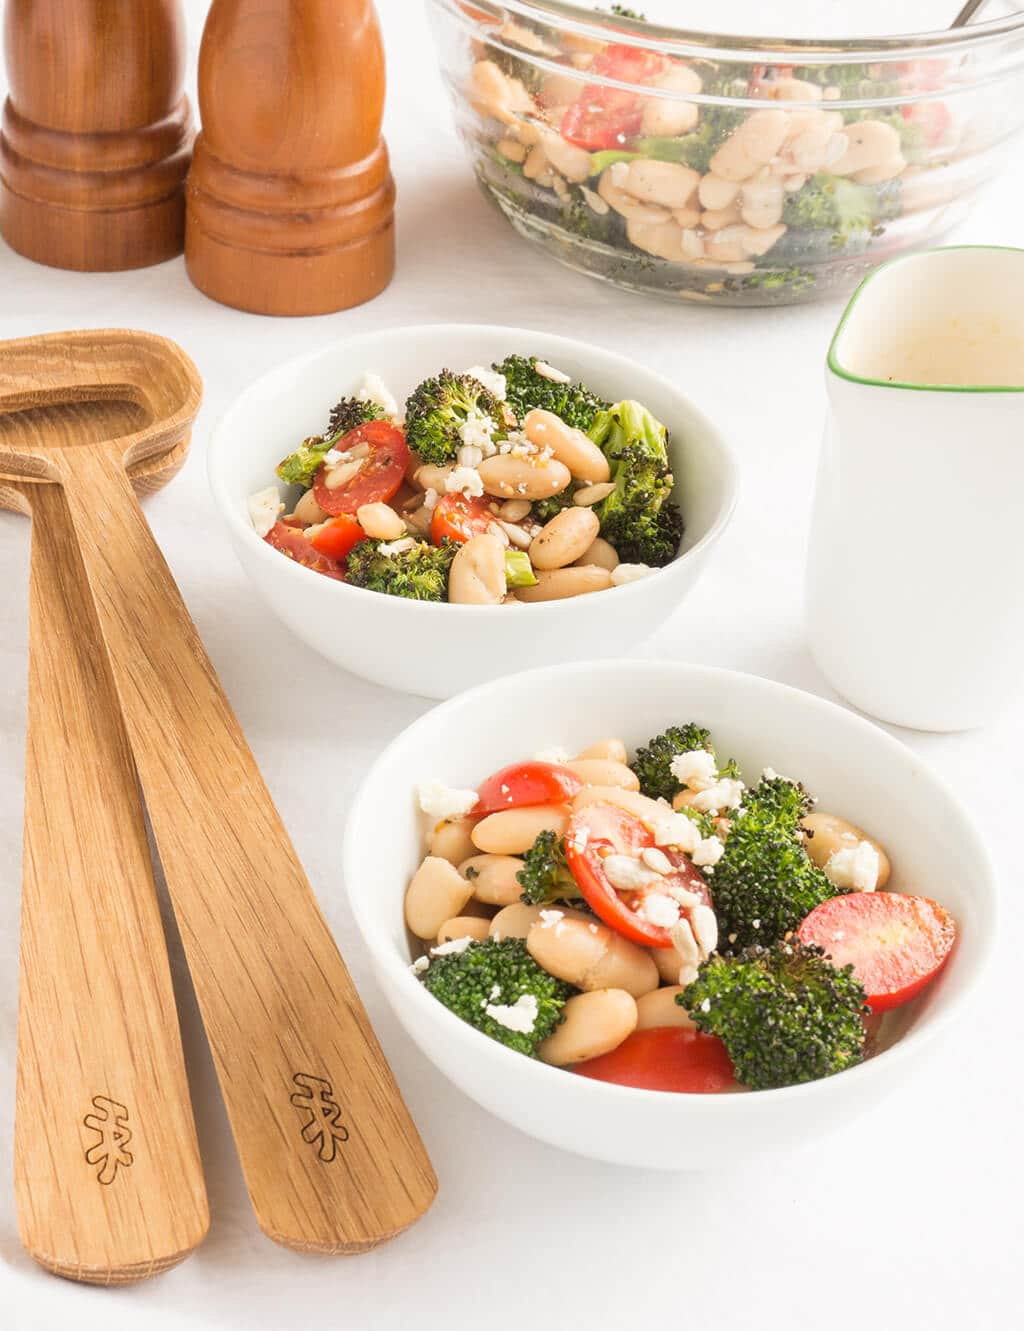 Roasted Broccoli Salad in bowls with serving utensils